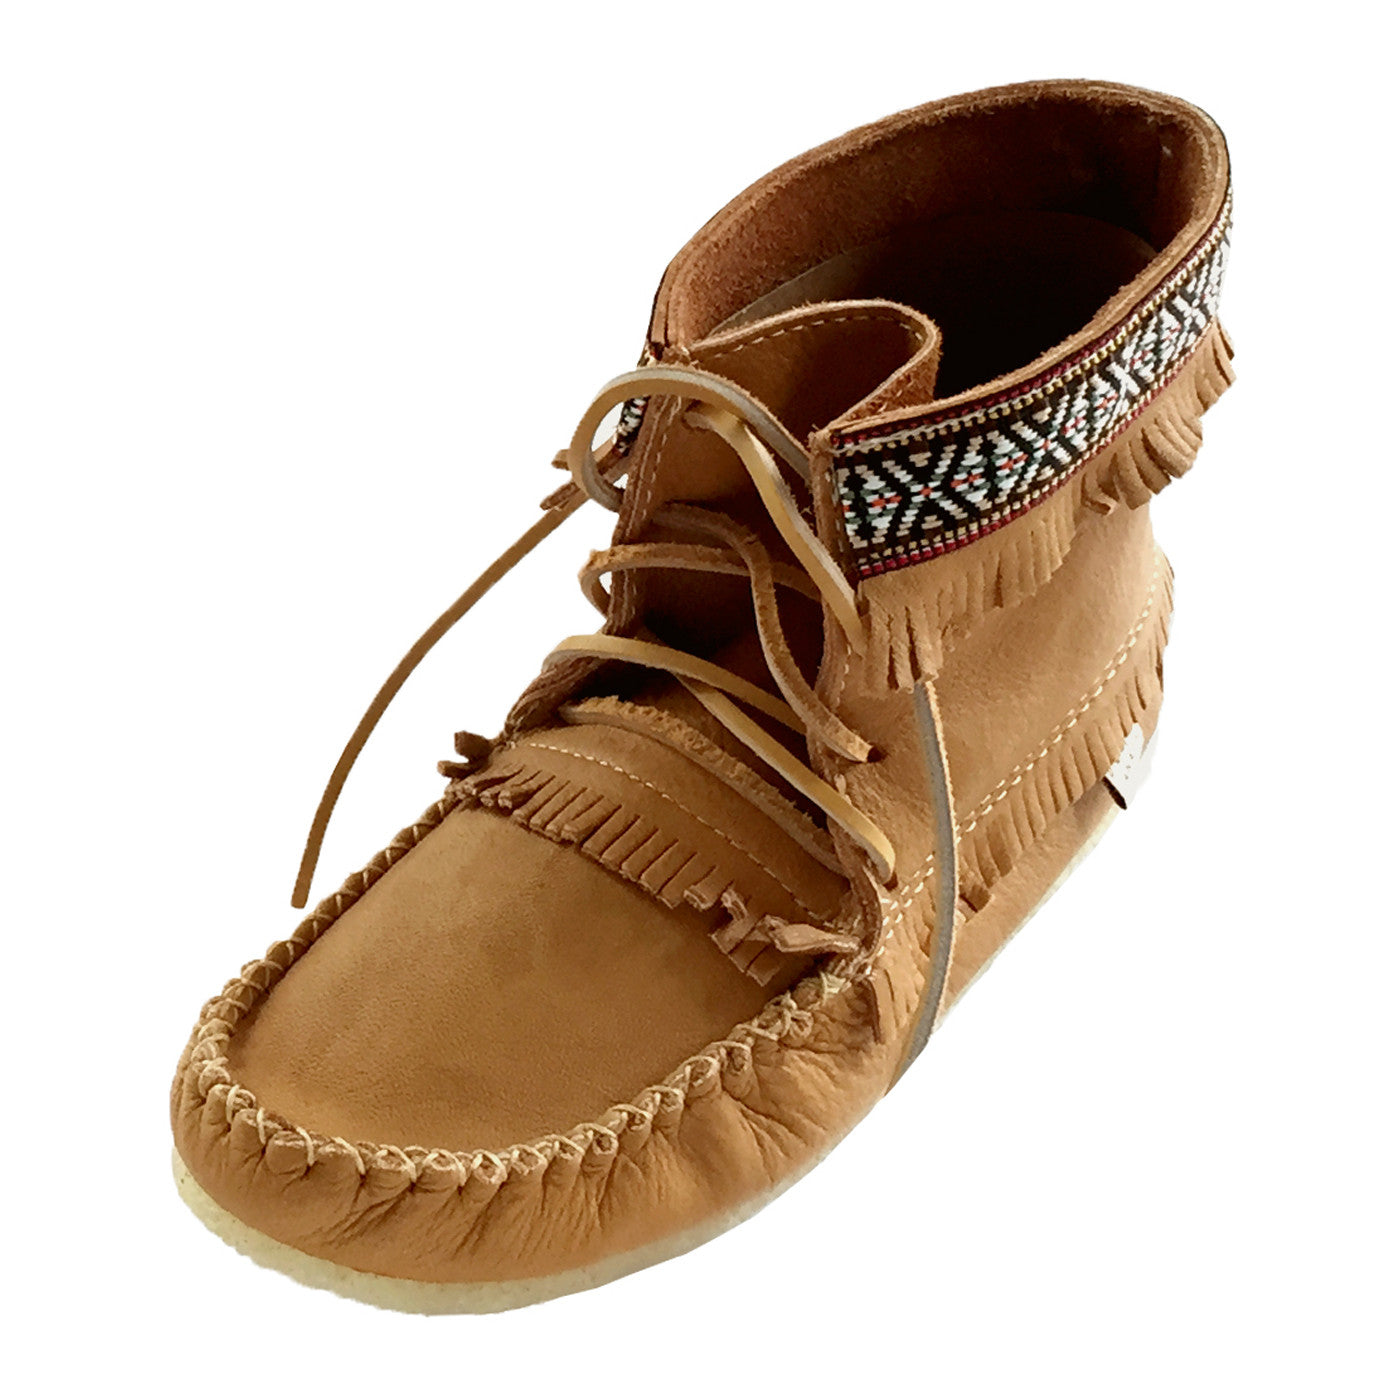 Men S Cork Brown Ankle Moccasin Boots Handmade From Real